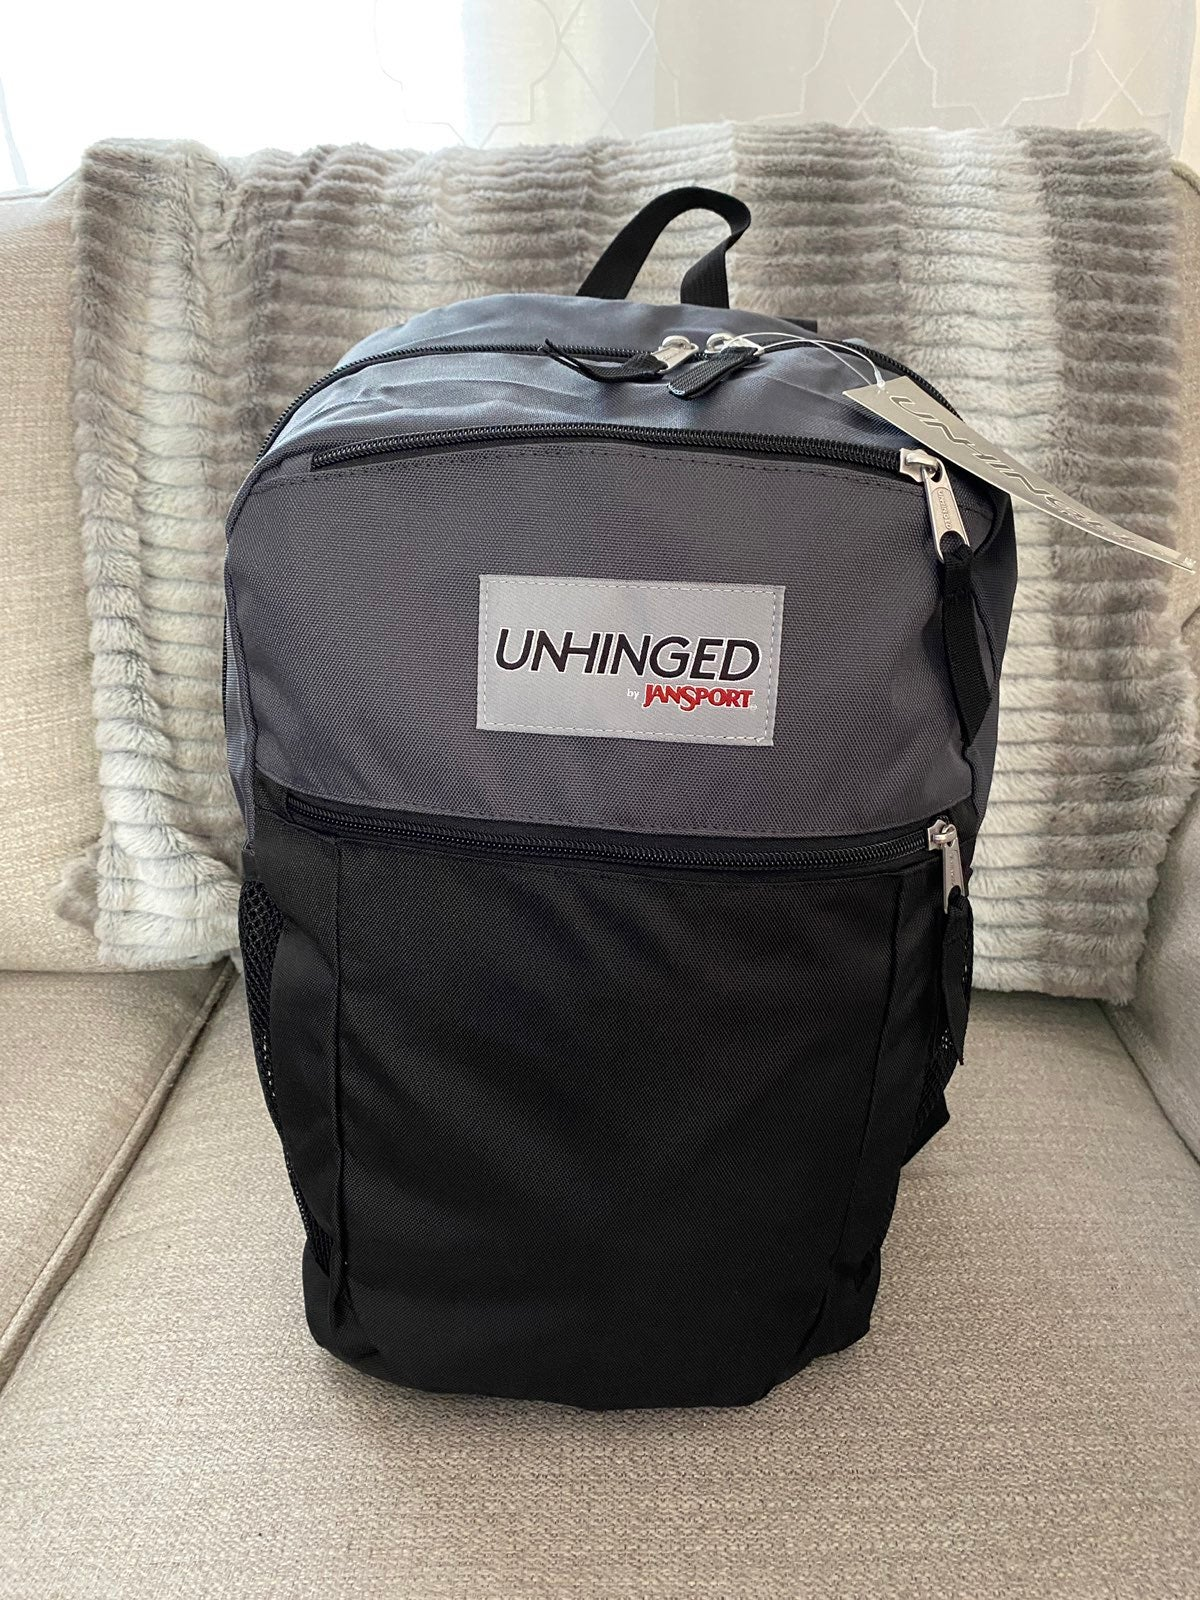 Unhinged by Jansport backpack